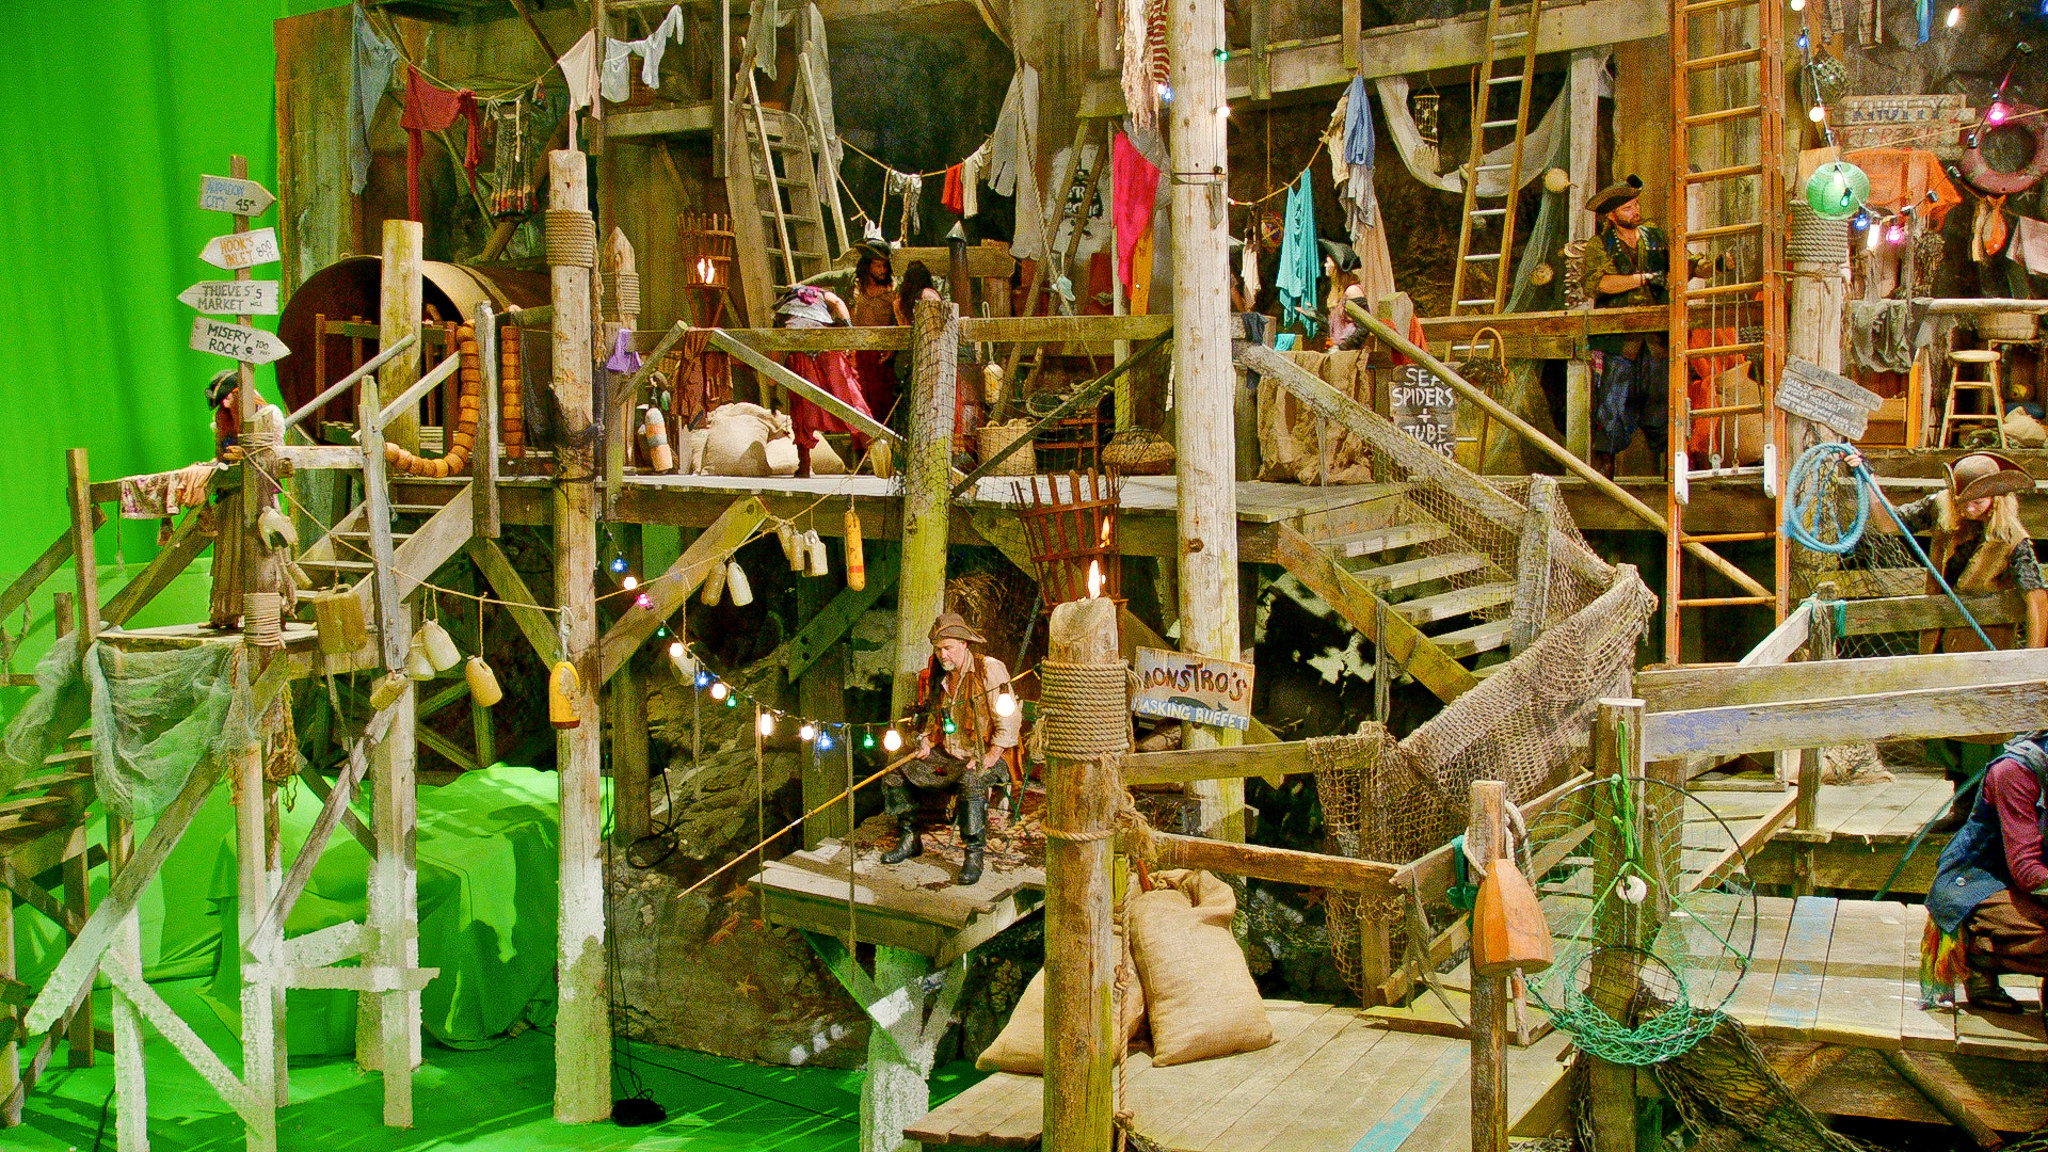 Another view of the rotten dockside set on the Isle of the Lost.